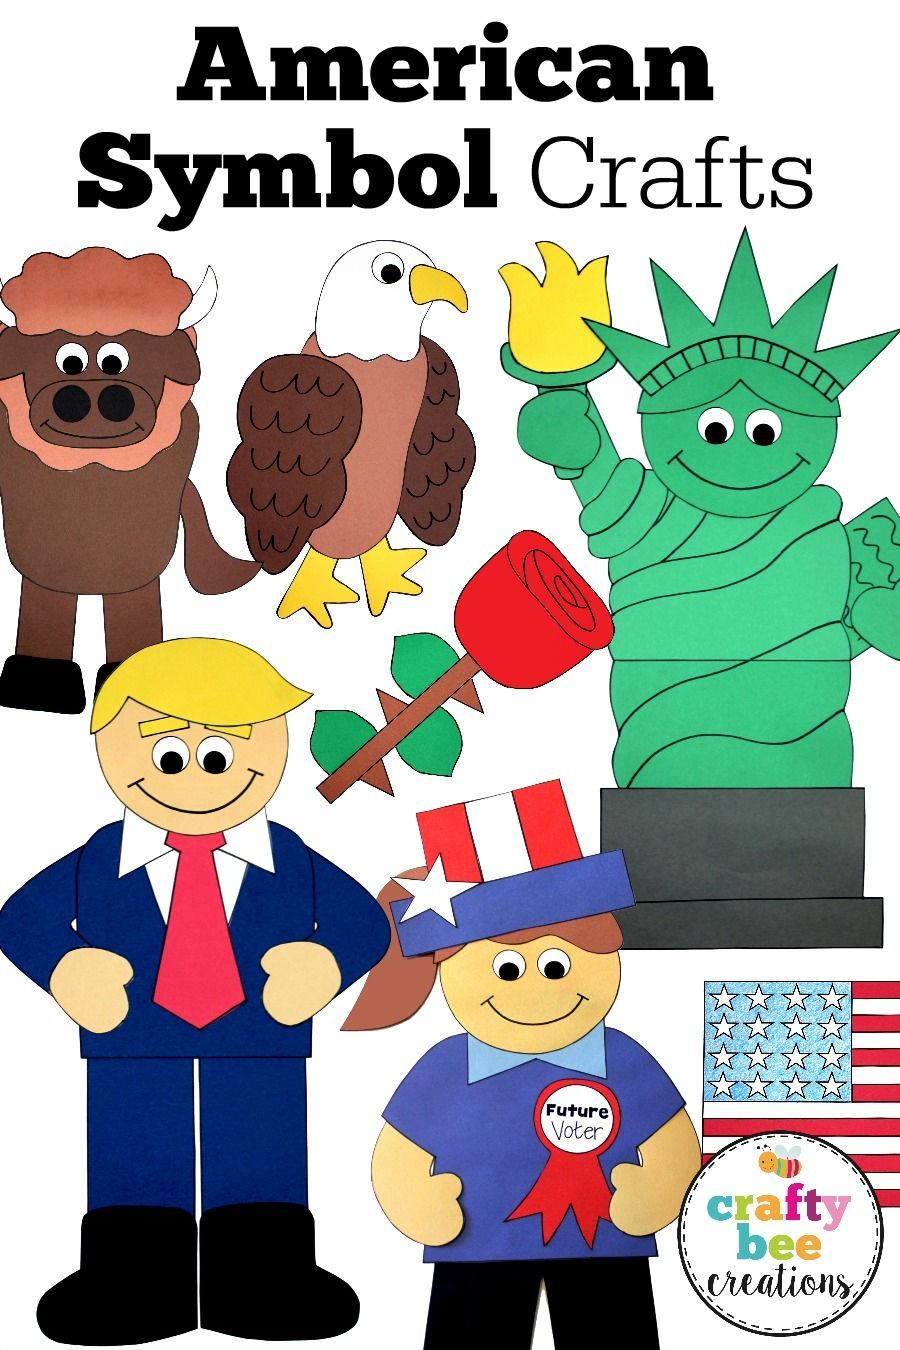 These American Symbol Crafts are great for the Fourth of July, Veteran's Day, Memorial Day, and during history units on the United States.  The craft patterns are easy to use and fun for kids preschool to third grade.